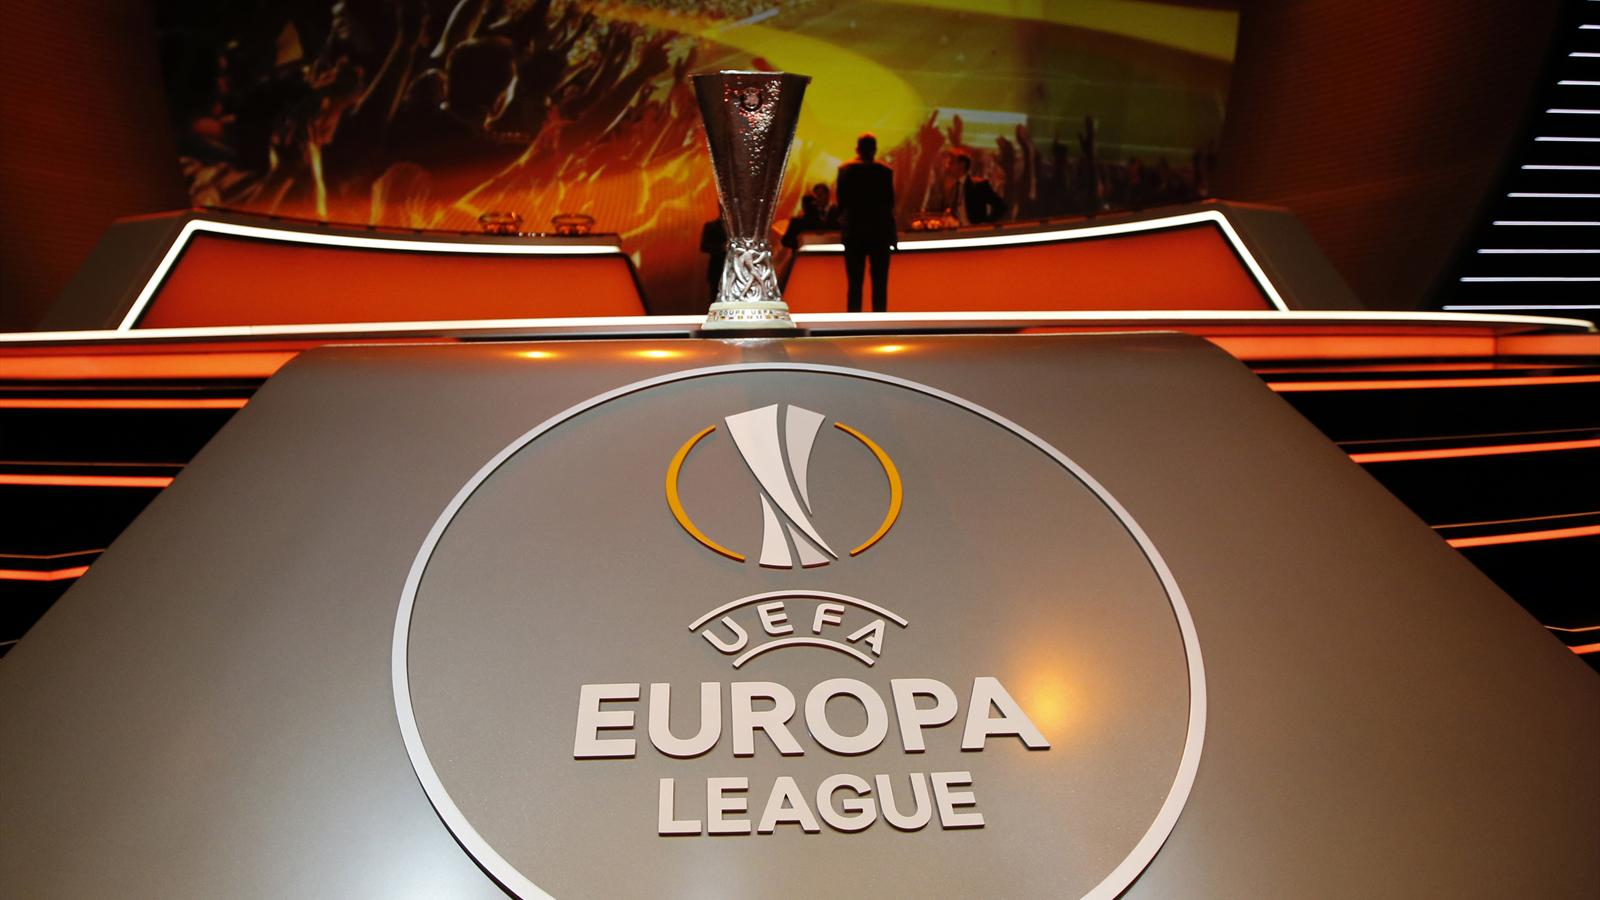 europa league auslosung 2019 live